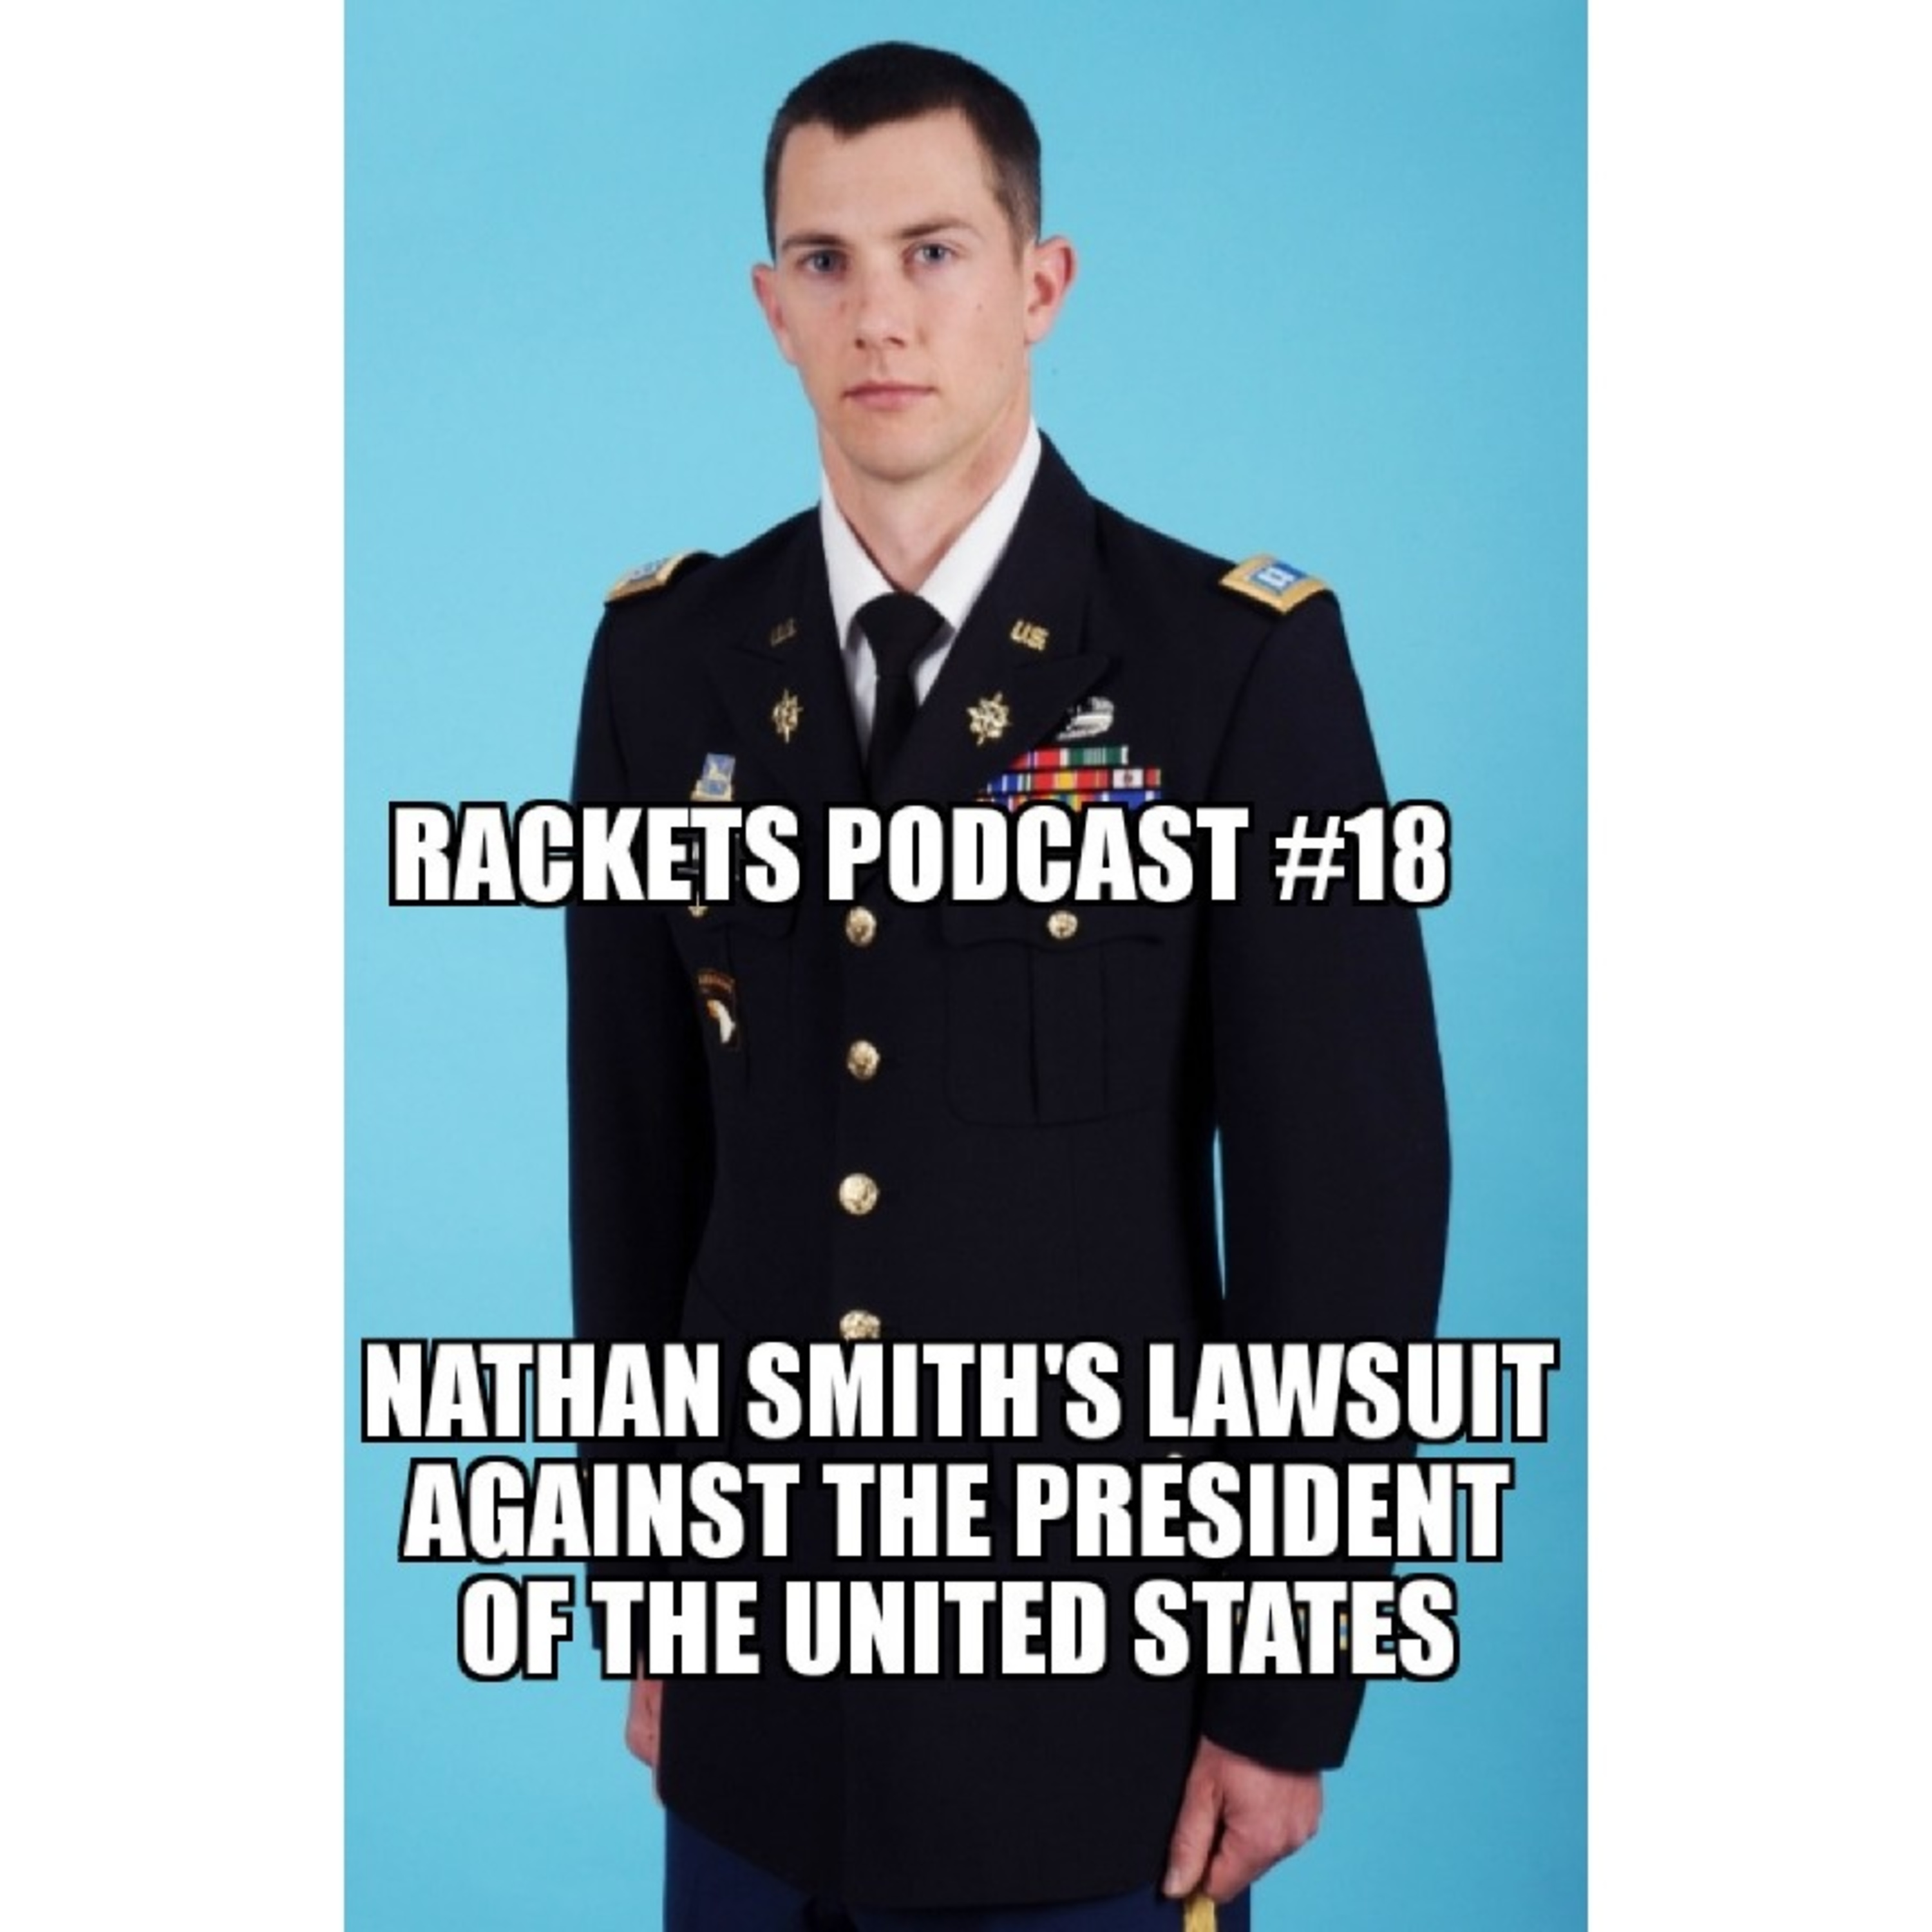 Nathan Smith's Lawsuit Against the President of the United States